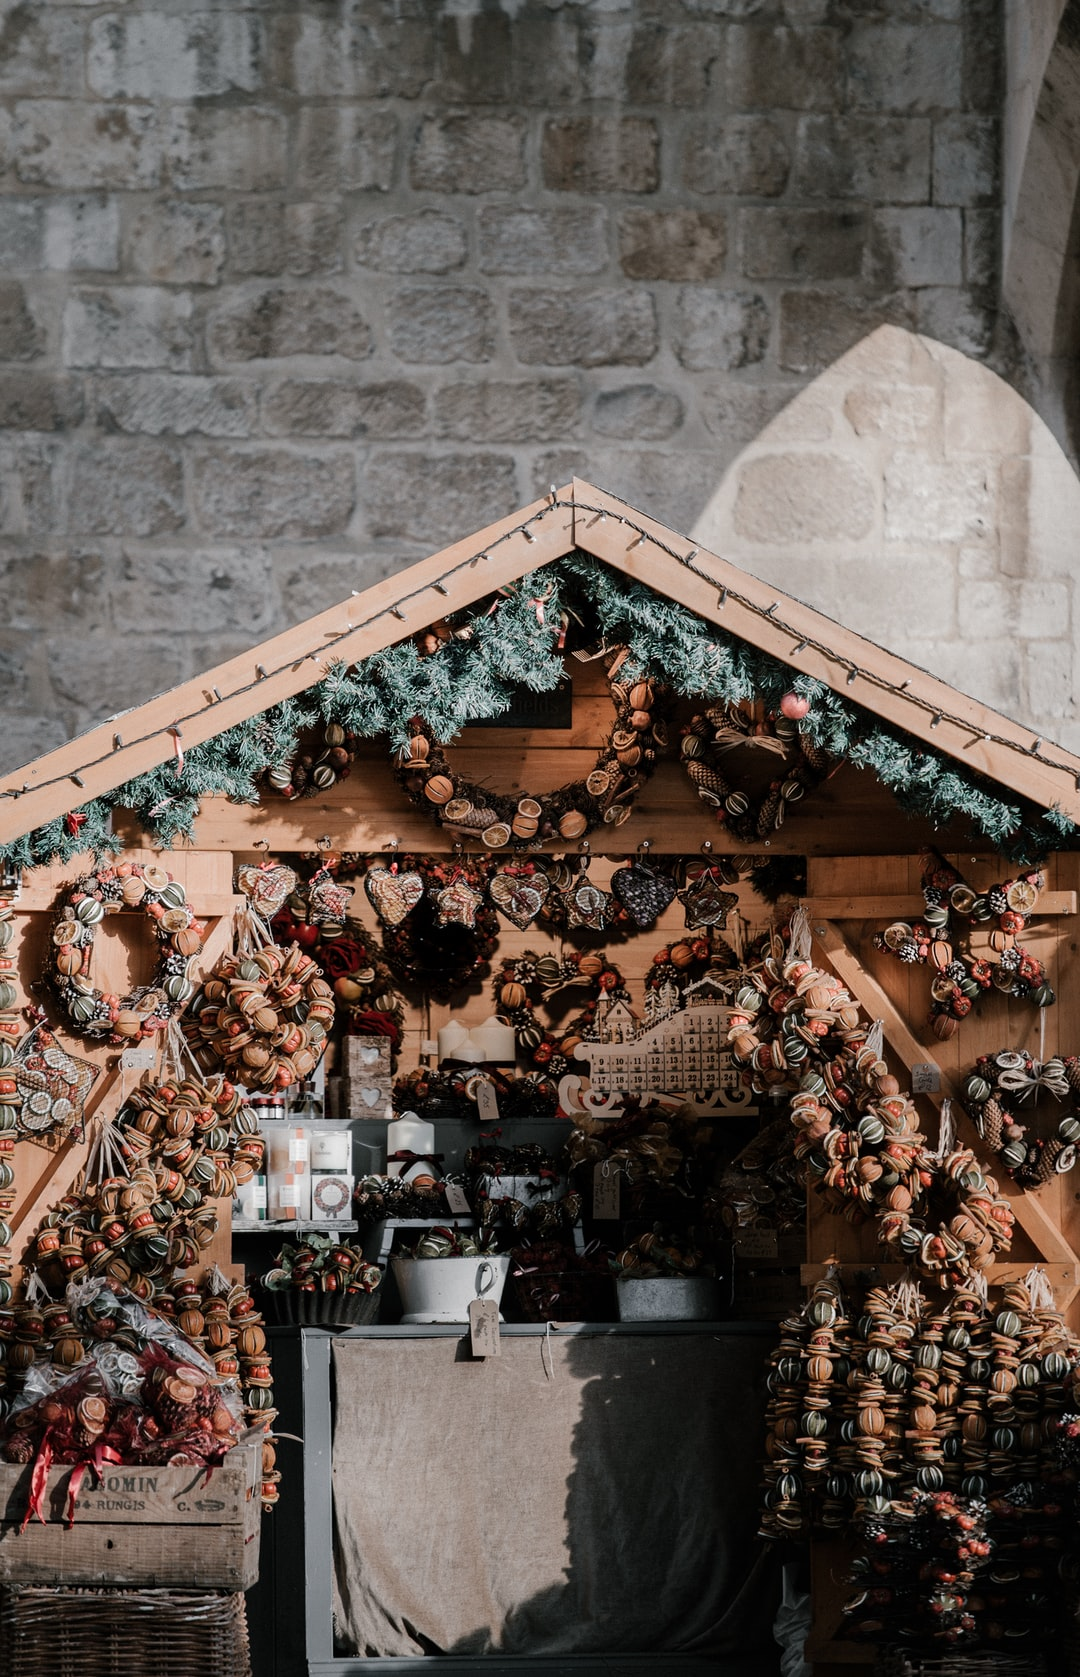 Christmas market stall with traditional dried orange wreaths - these smell AMAZING!